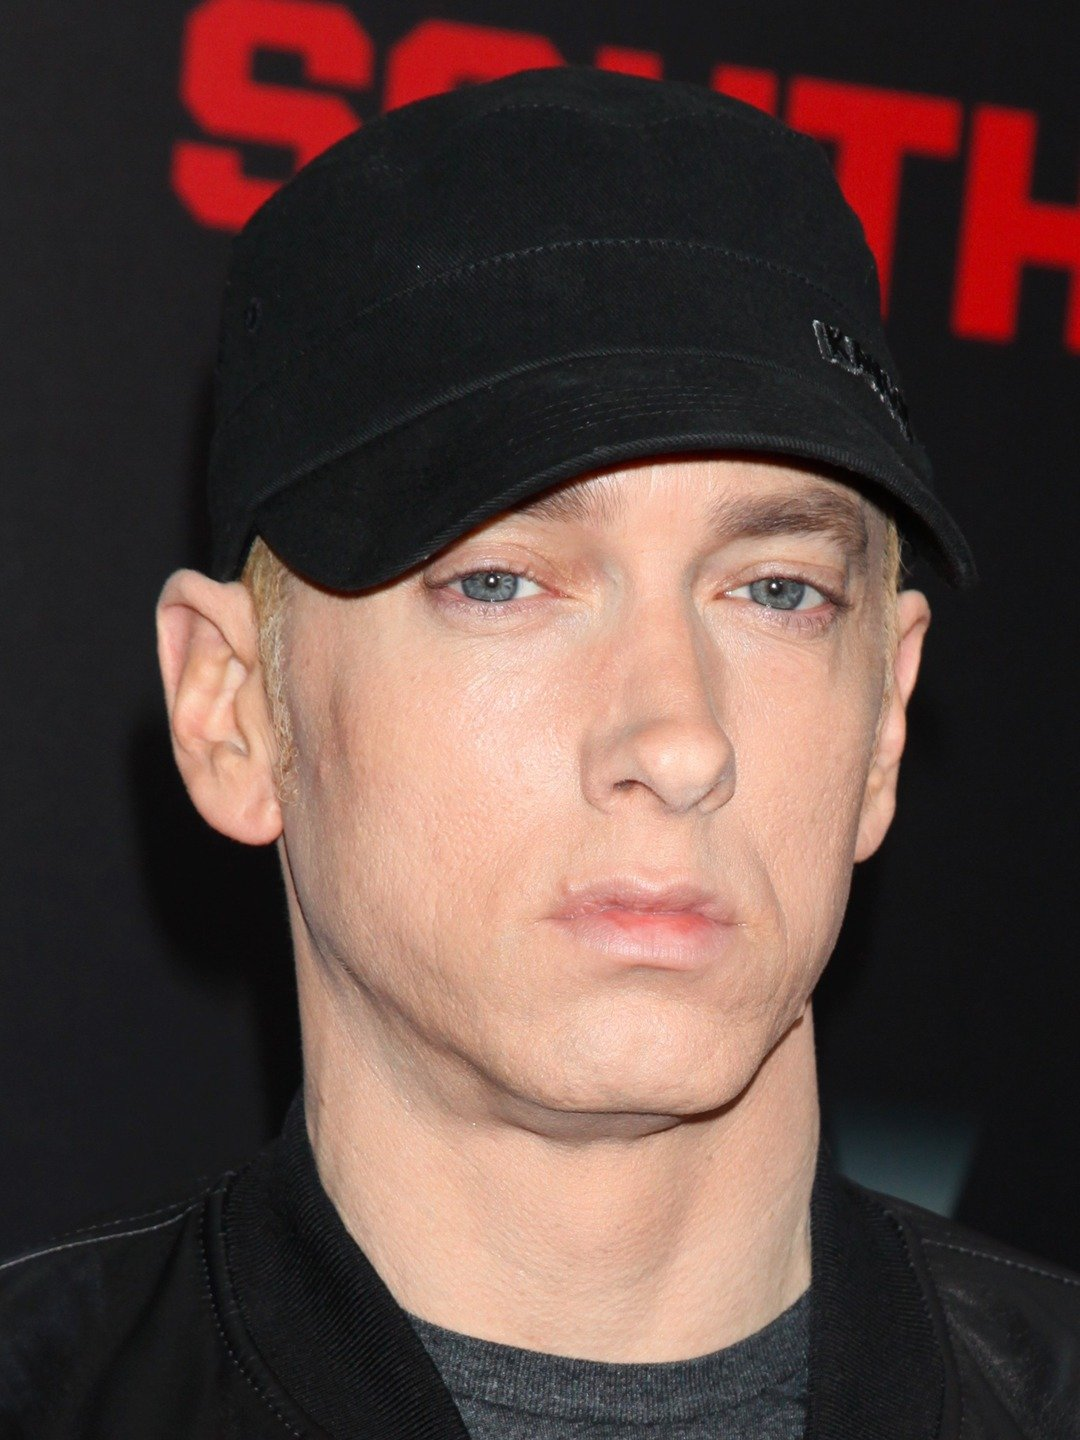 How tall is Eminem?